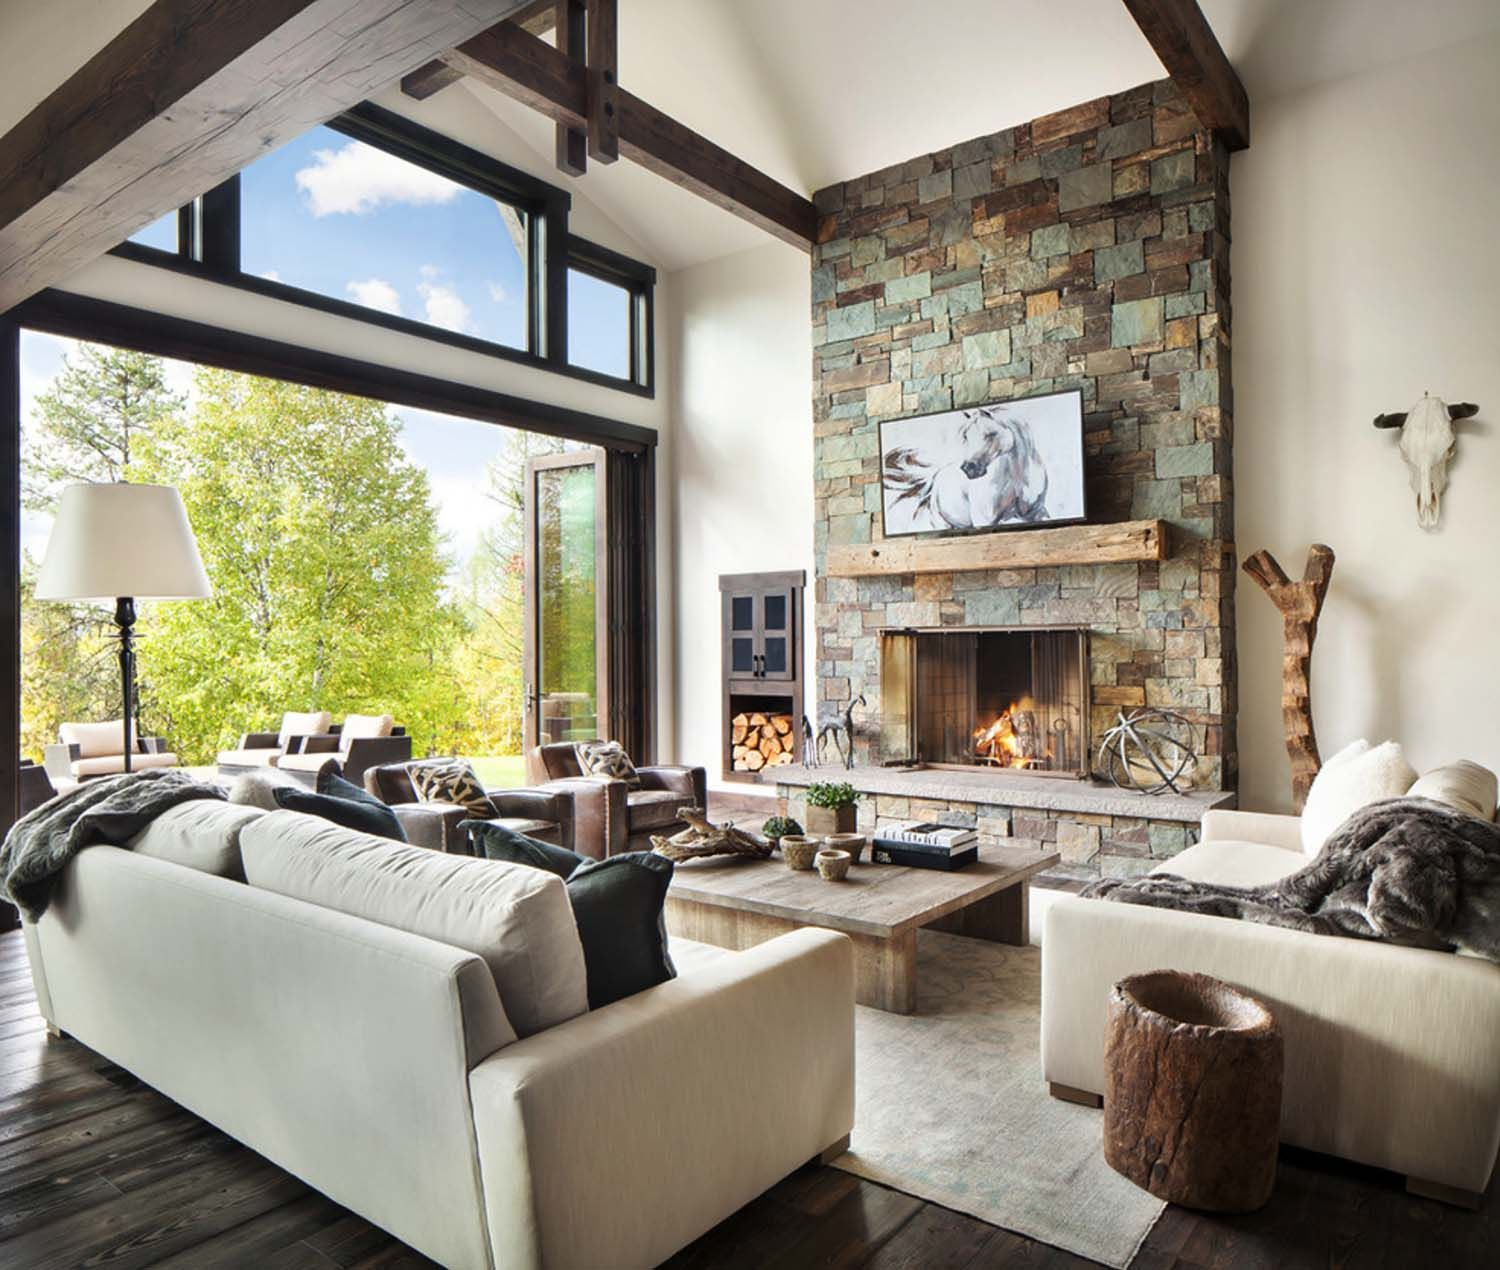 Rustic Interior Design Ideas Living Room Rustic Modern Dwelling Nestled In The Northern Rocky